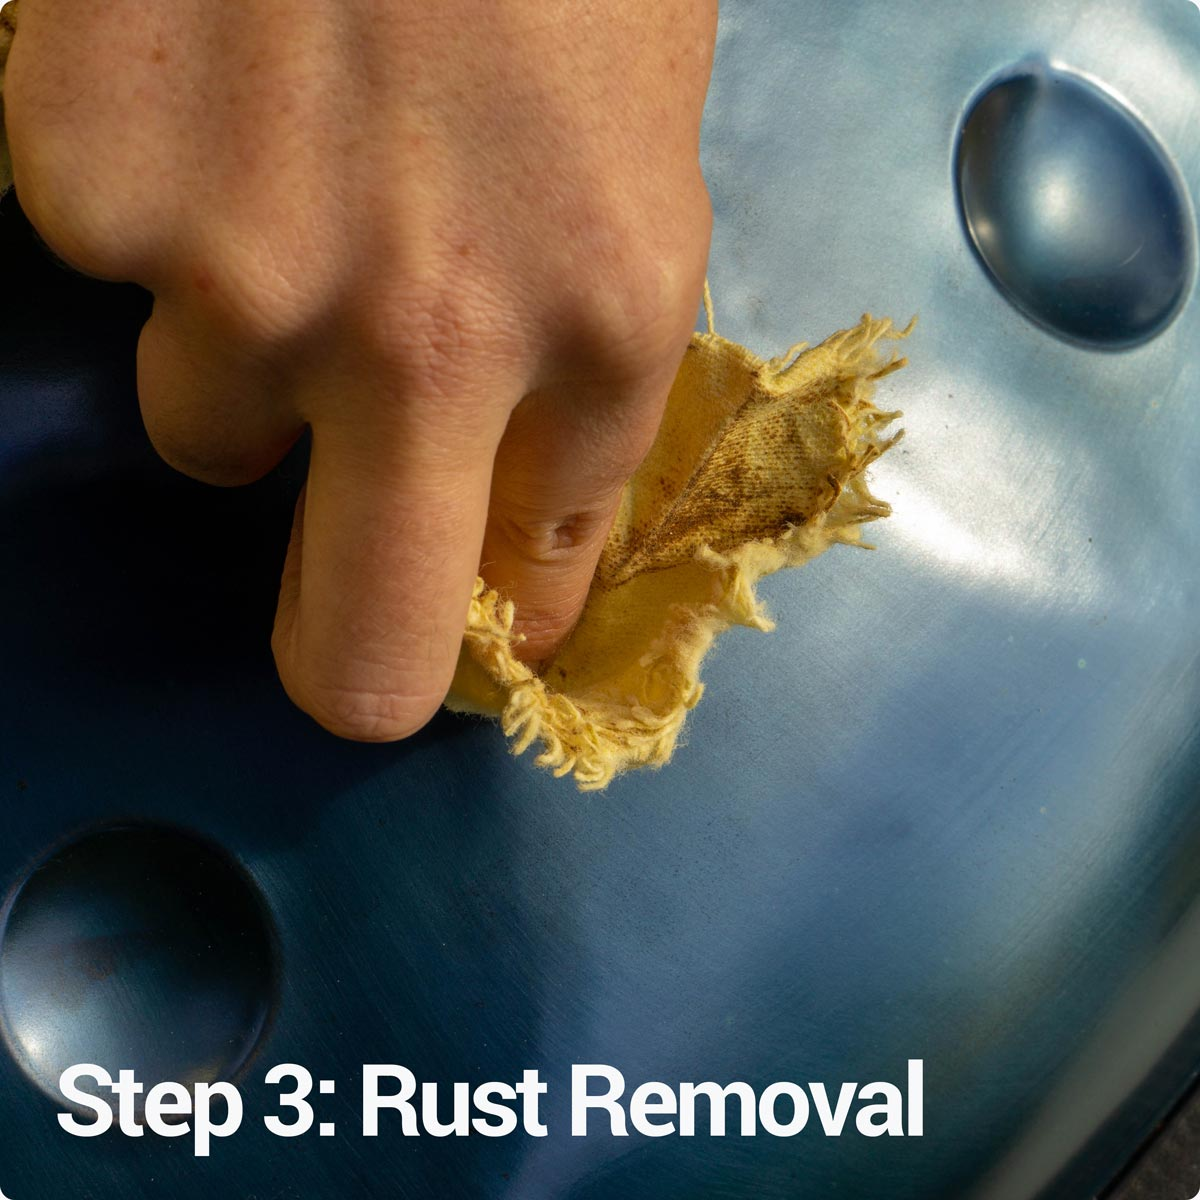 Step 3: Remove rust on your handpan